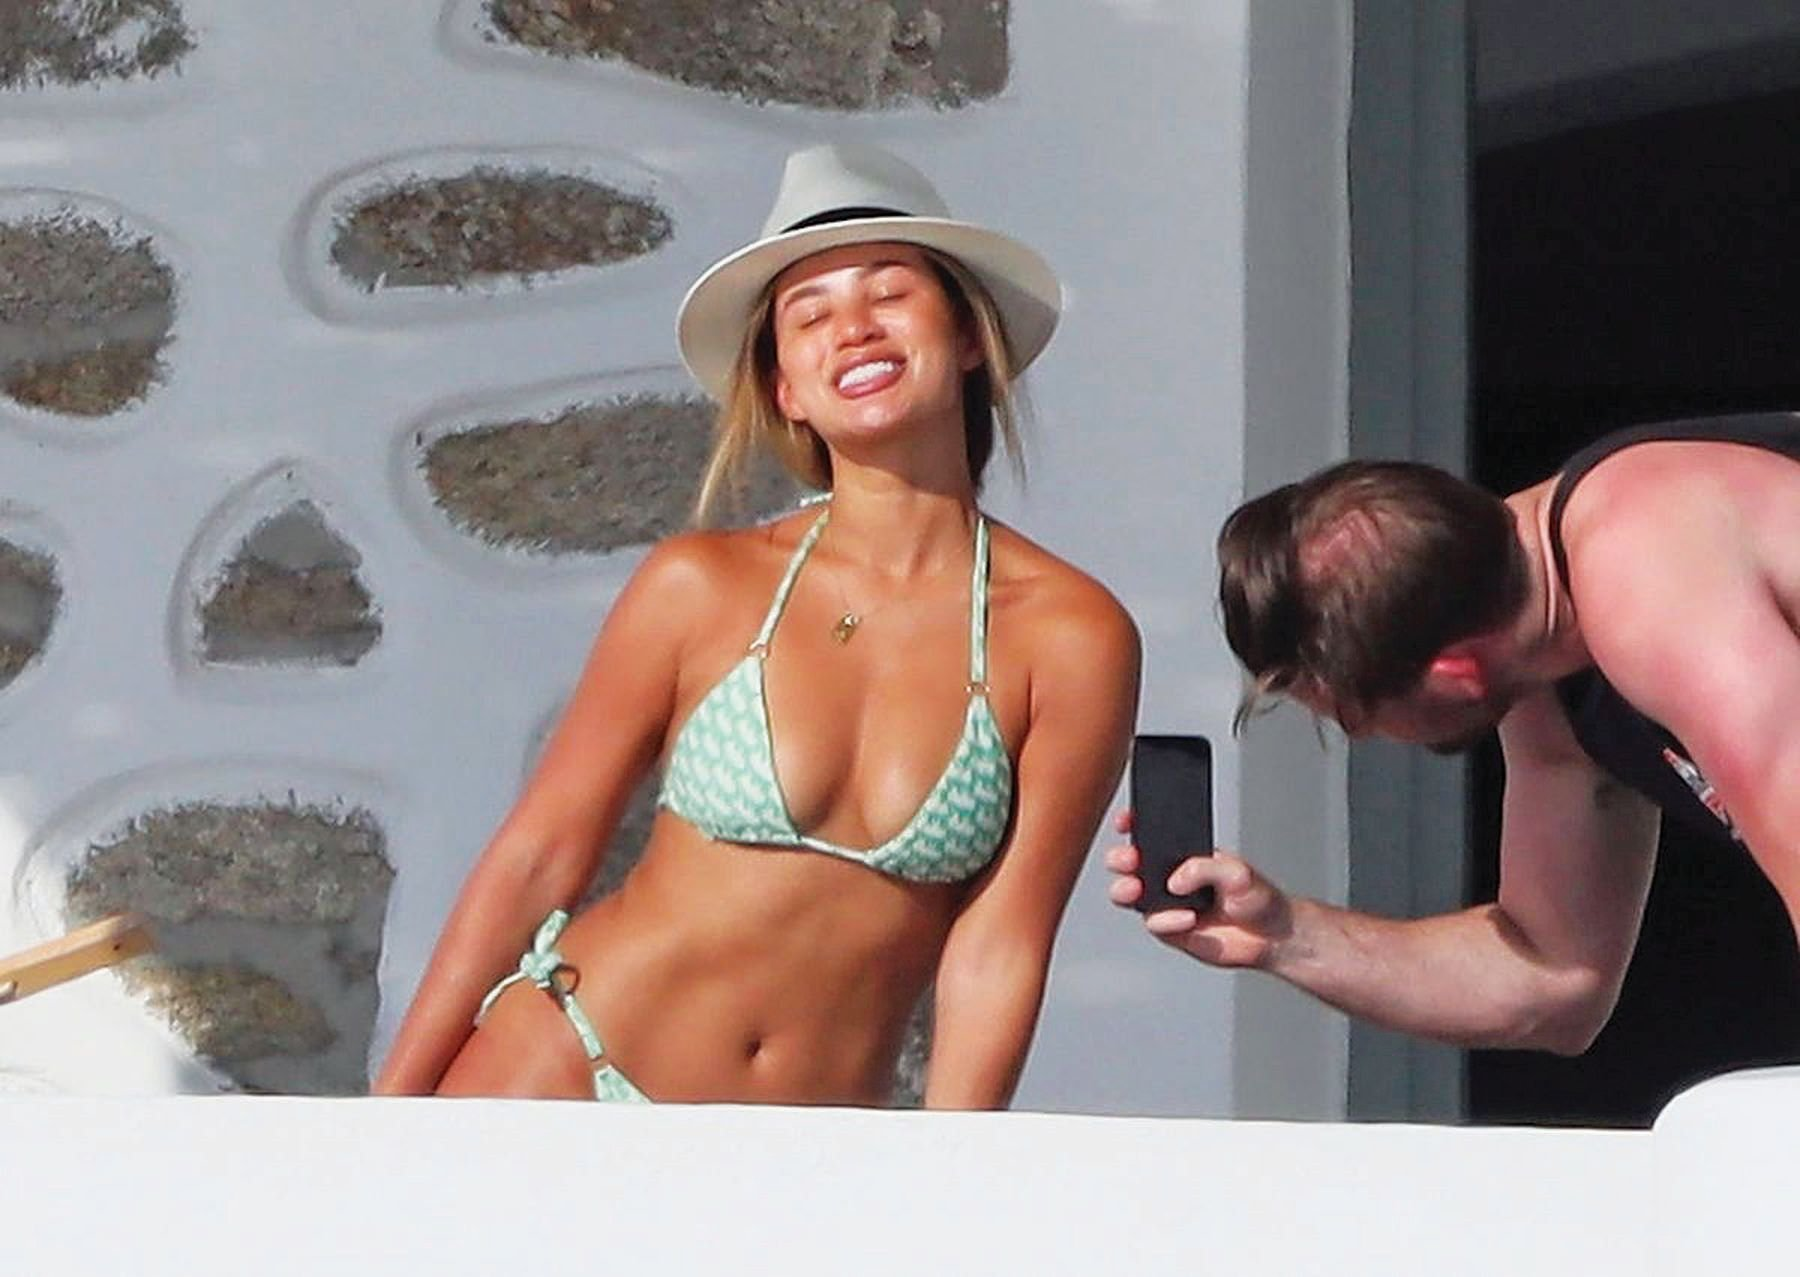 montana brown enjoys the hot greek sunshine on her romantic holiday with boyfriend mark o connor in mykonos 2